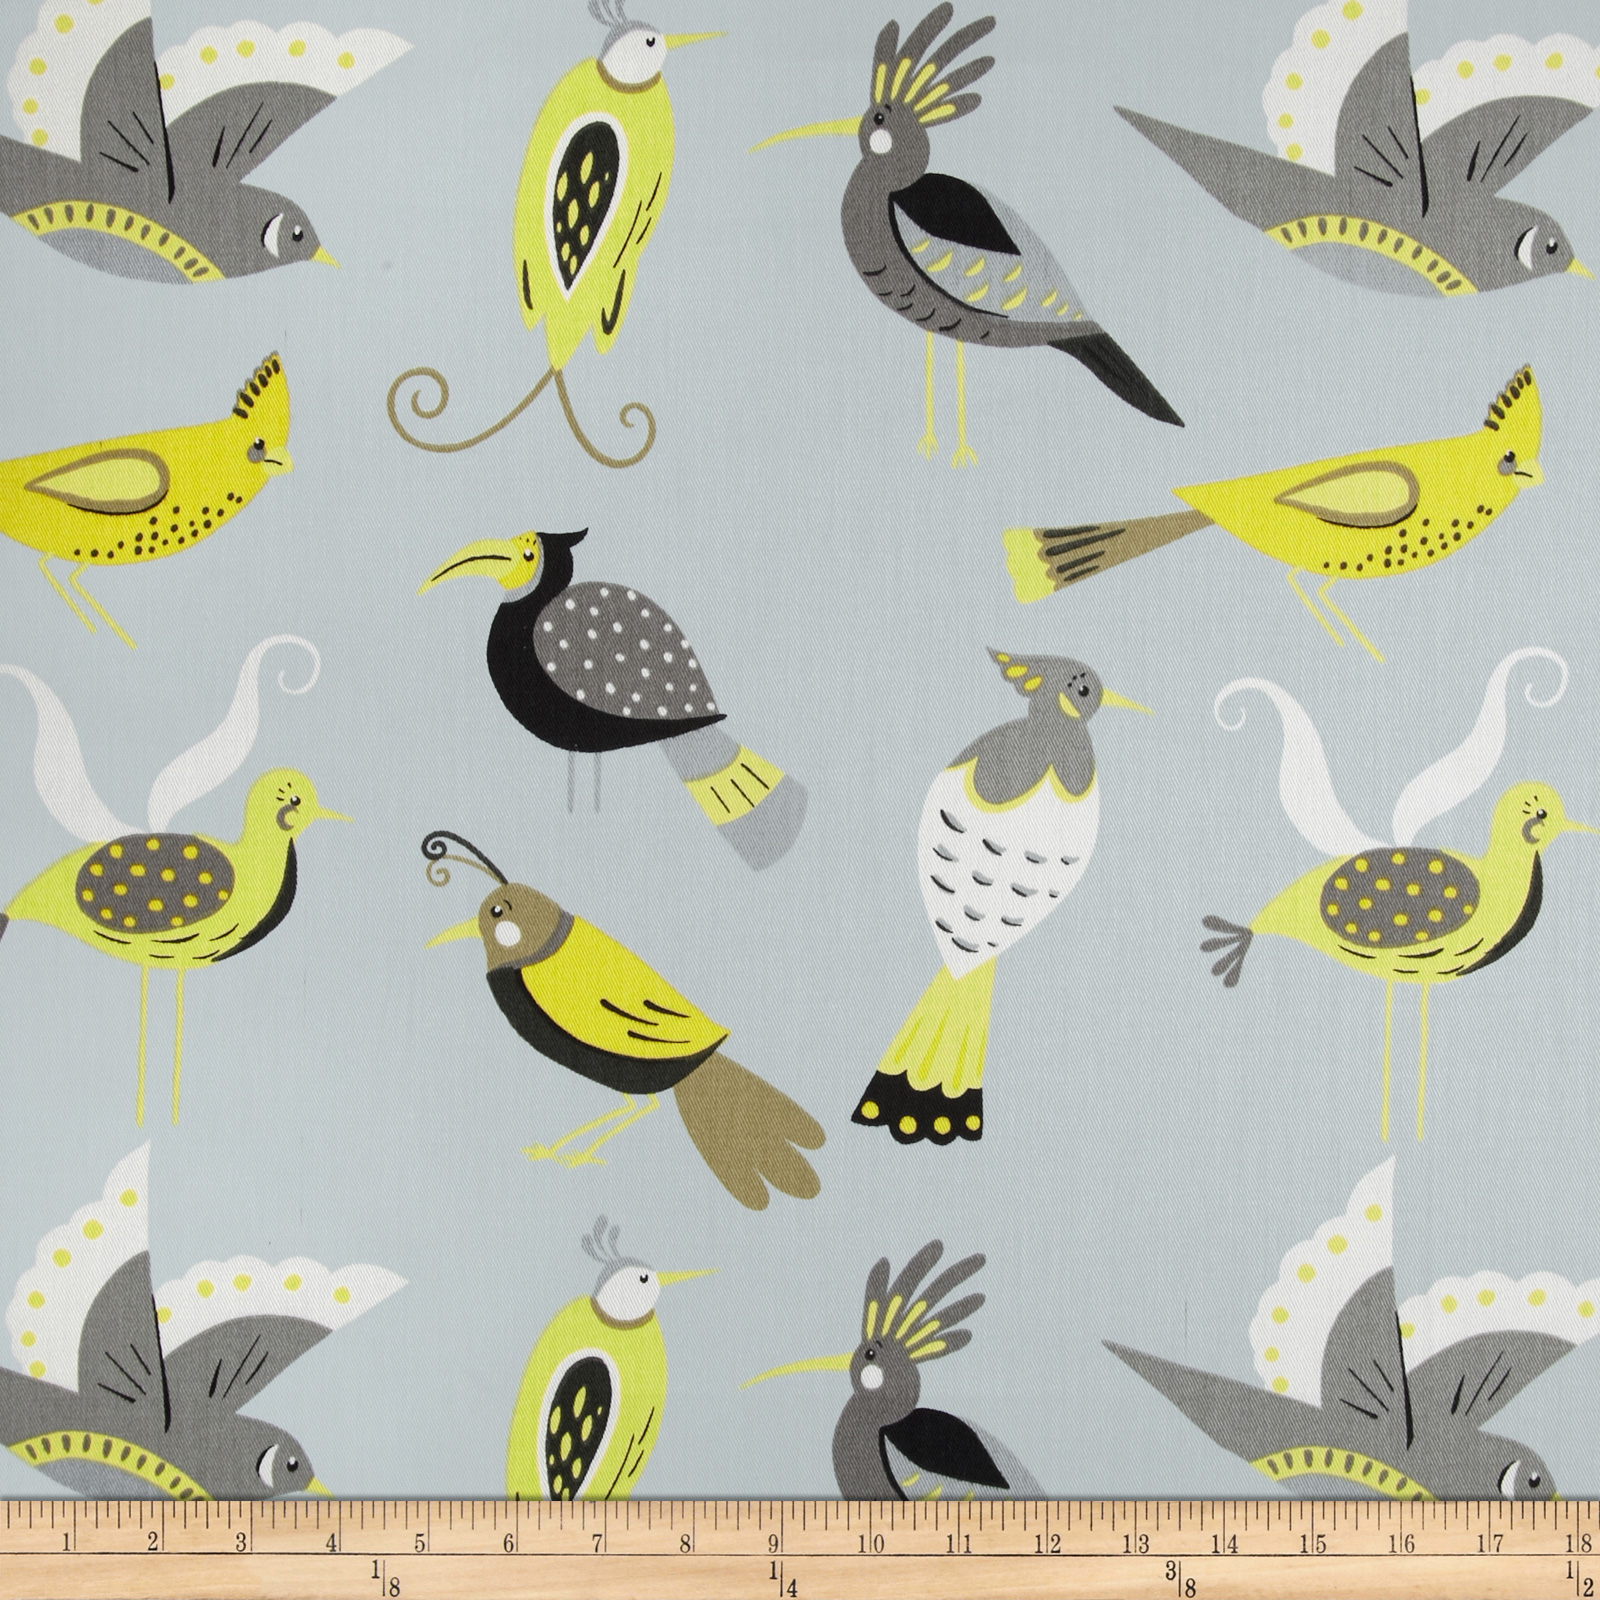 Waverly For the Birds Twill Lemon Fabric